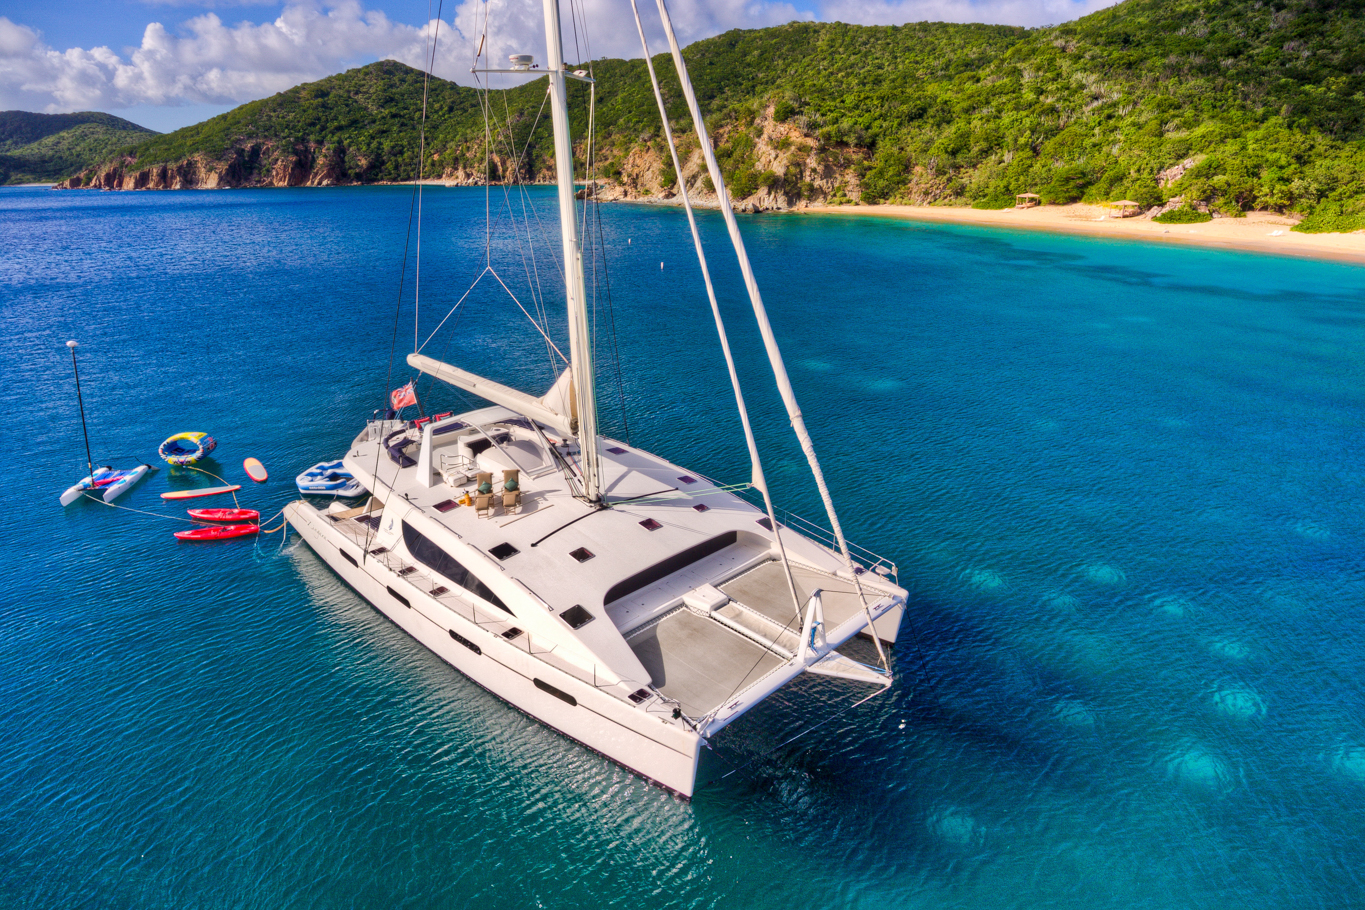 10-person BVI Catamaran Charters - Ocean Getaways Yacht Charters